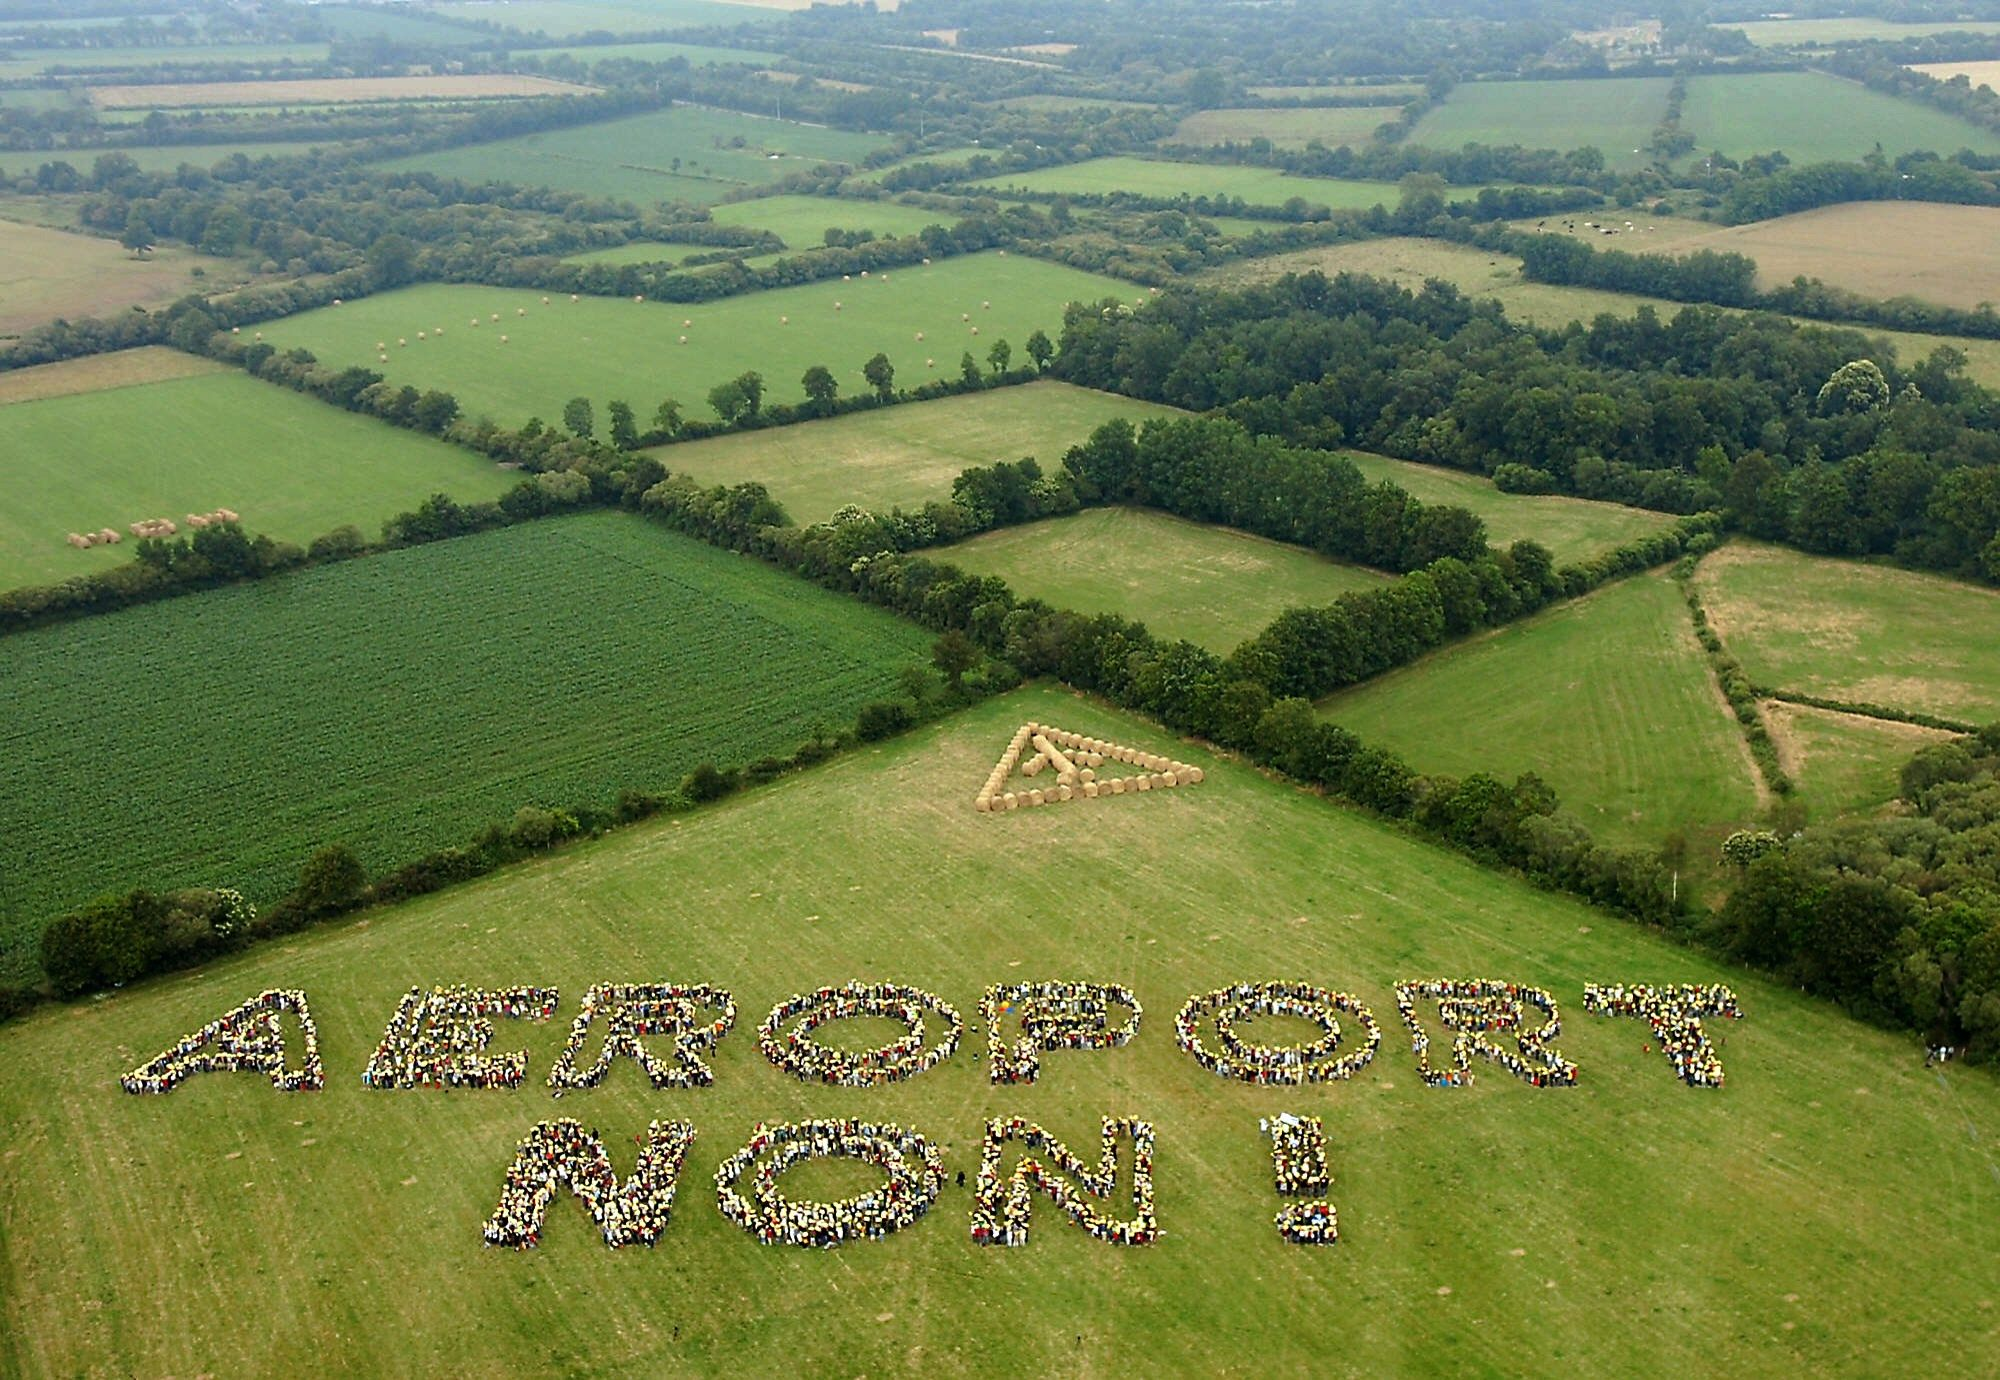 "(FILES) A file picture taken on June 25, 2006 shows an aerial view of protesters performing a human chain in order to write ""Airport, no!"" in the countryside of Notre-Dame-des-Landes near Nantes where the construction of an airport may take place. The prefecture of Loire-Atlantique announced on October 30, 2015 that the French State authorized the resumption of the construction works of the controversial airport project in Notre-Dame-des-Landes, near Nantes, adjourned since 2012.AFP PHOTO / ALAIN JOCARD"